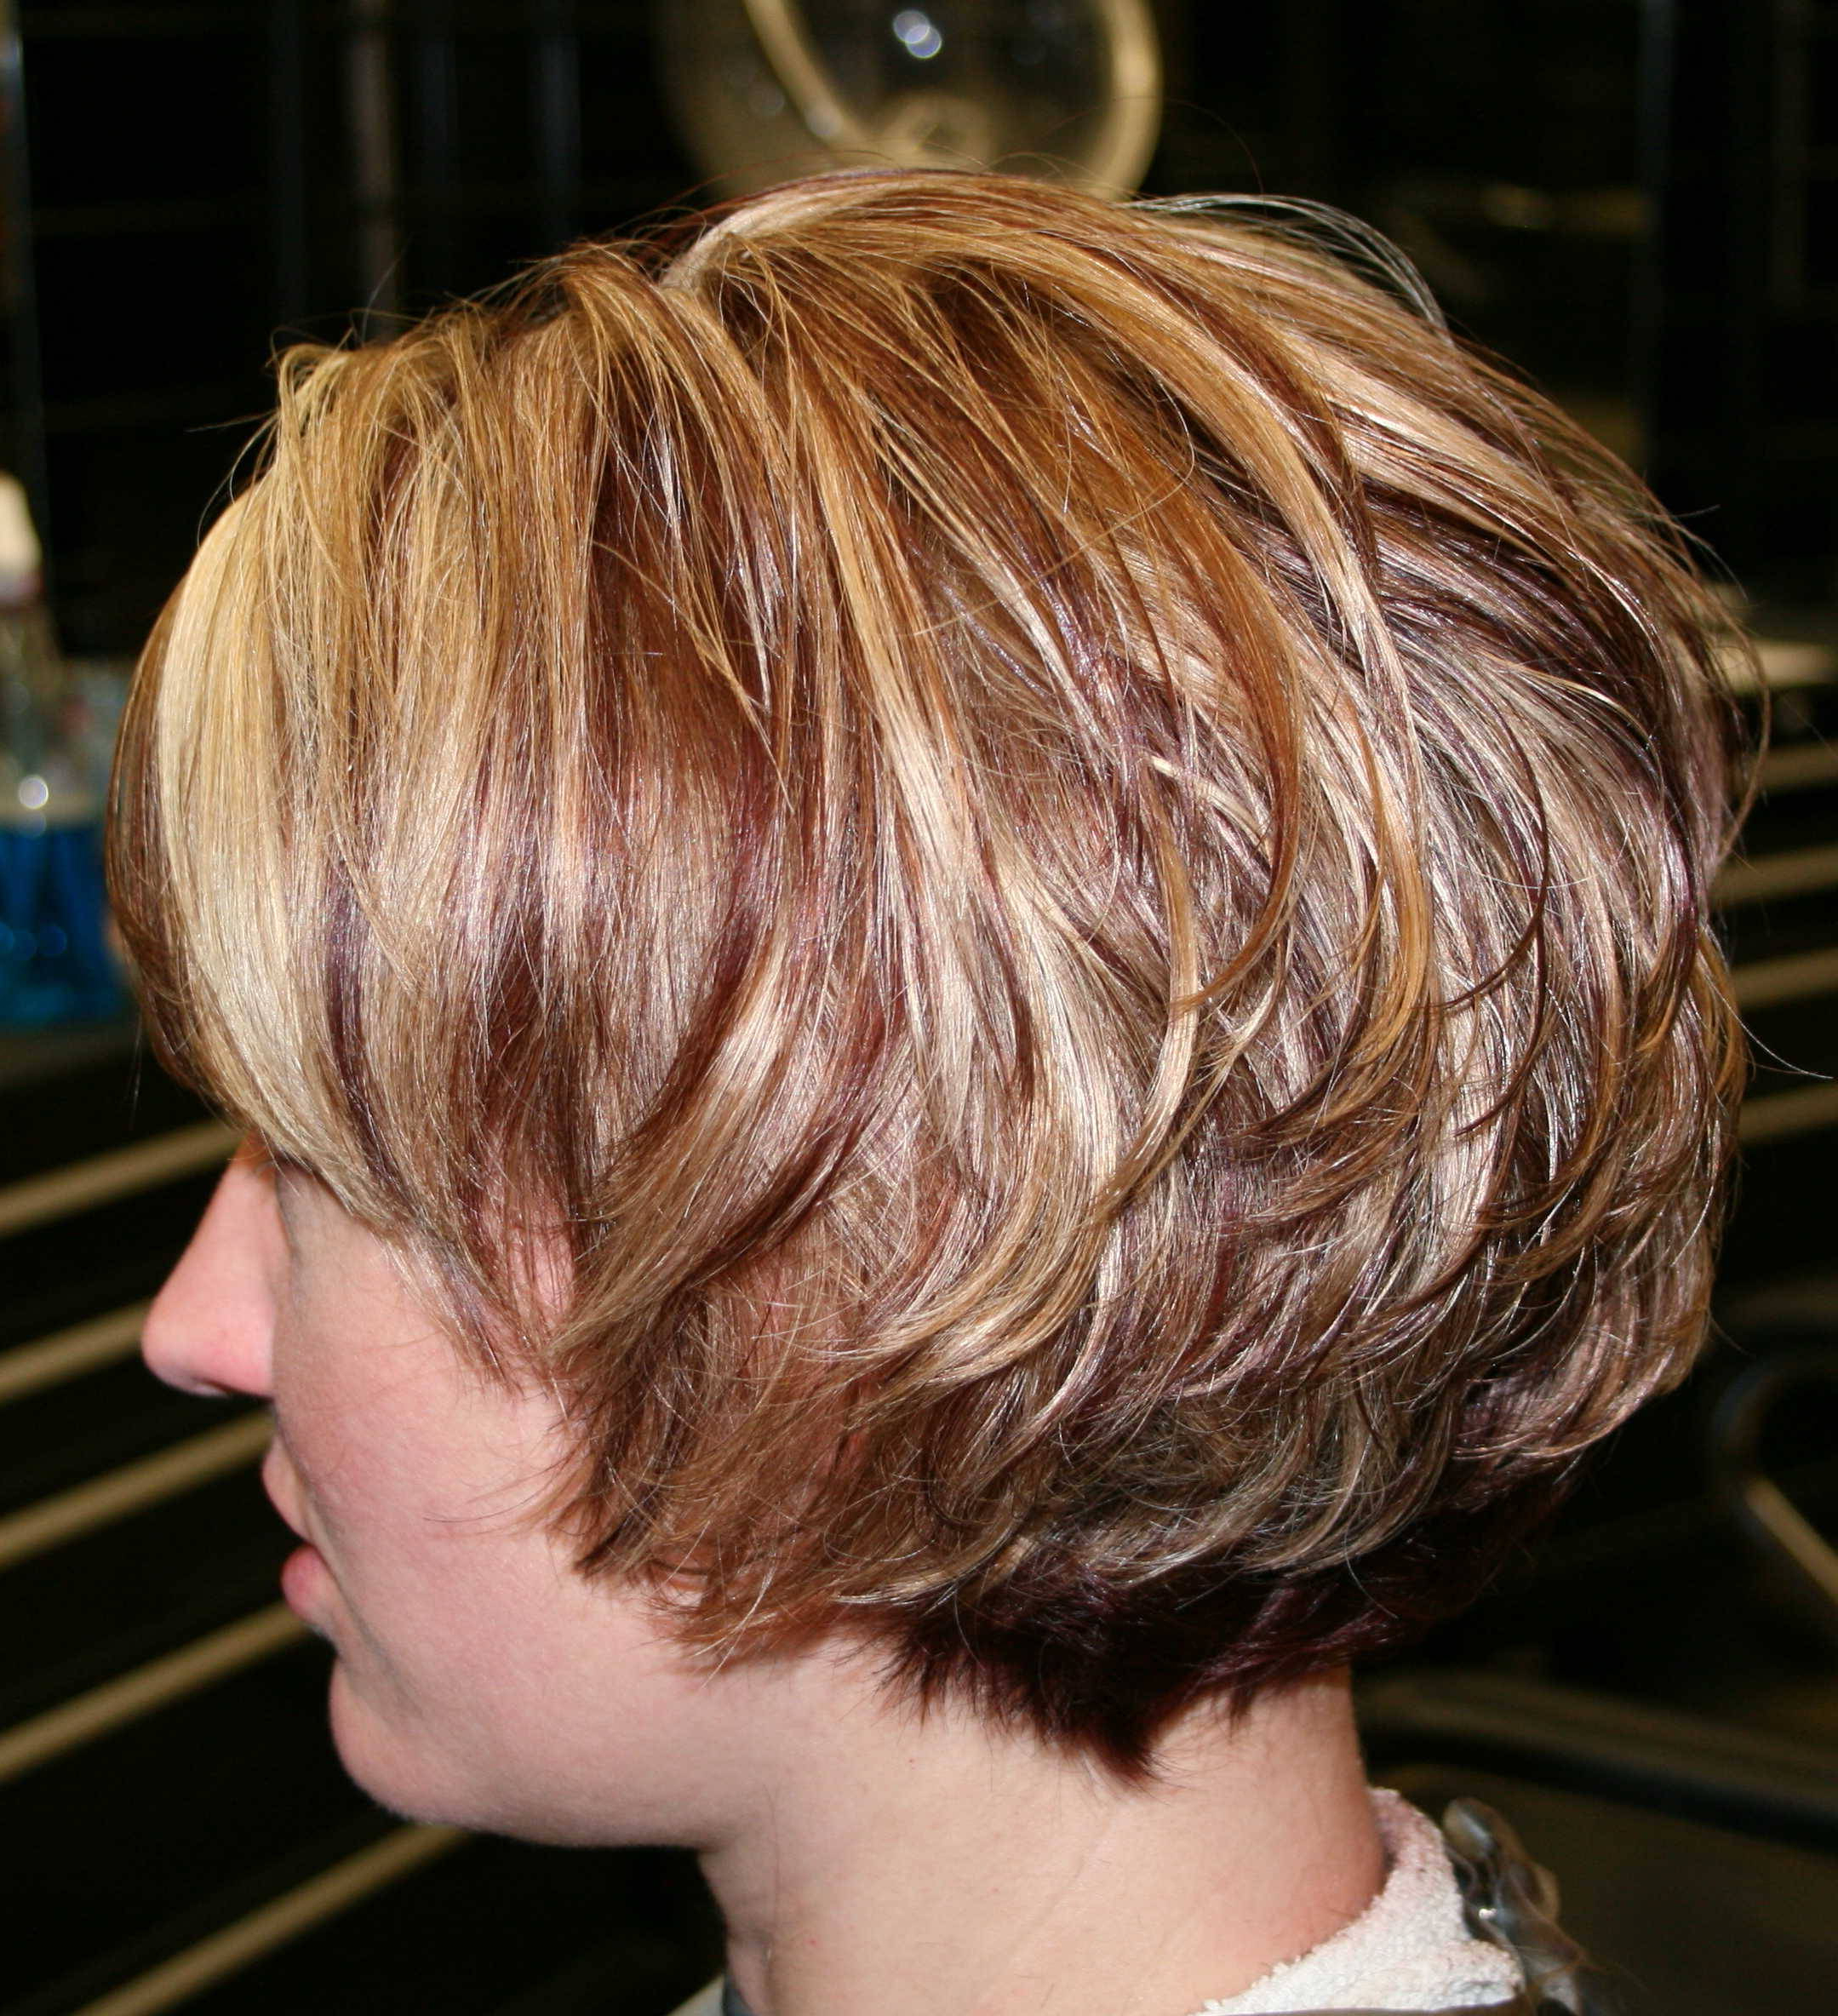 Black Hairstyles With Short Hair Short Layered Hairstyles Within Black Short Layered Hairstyles (View 7 of 25)